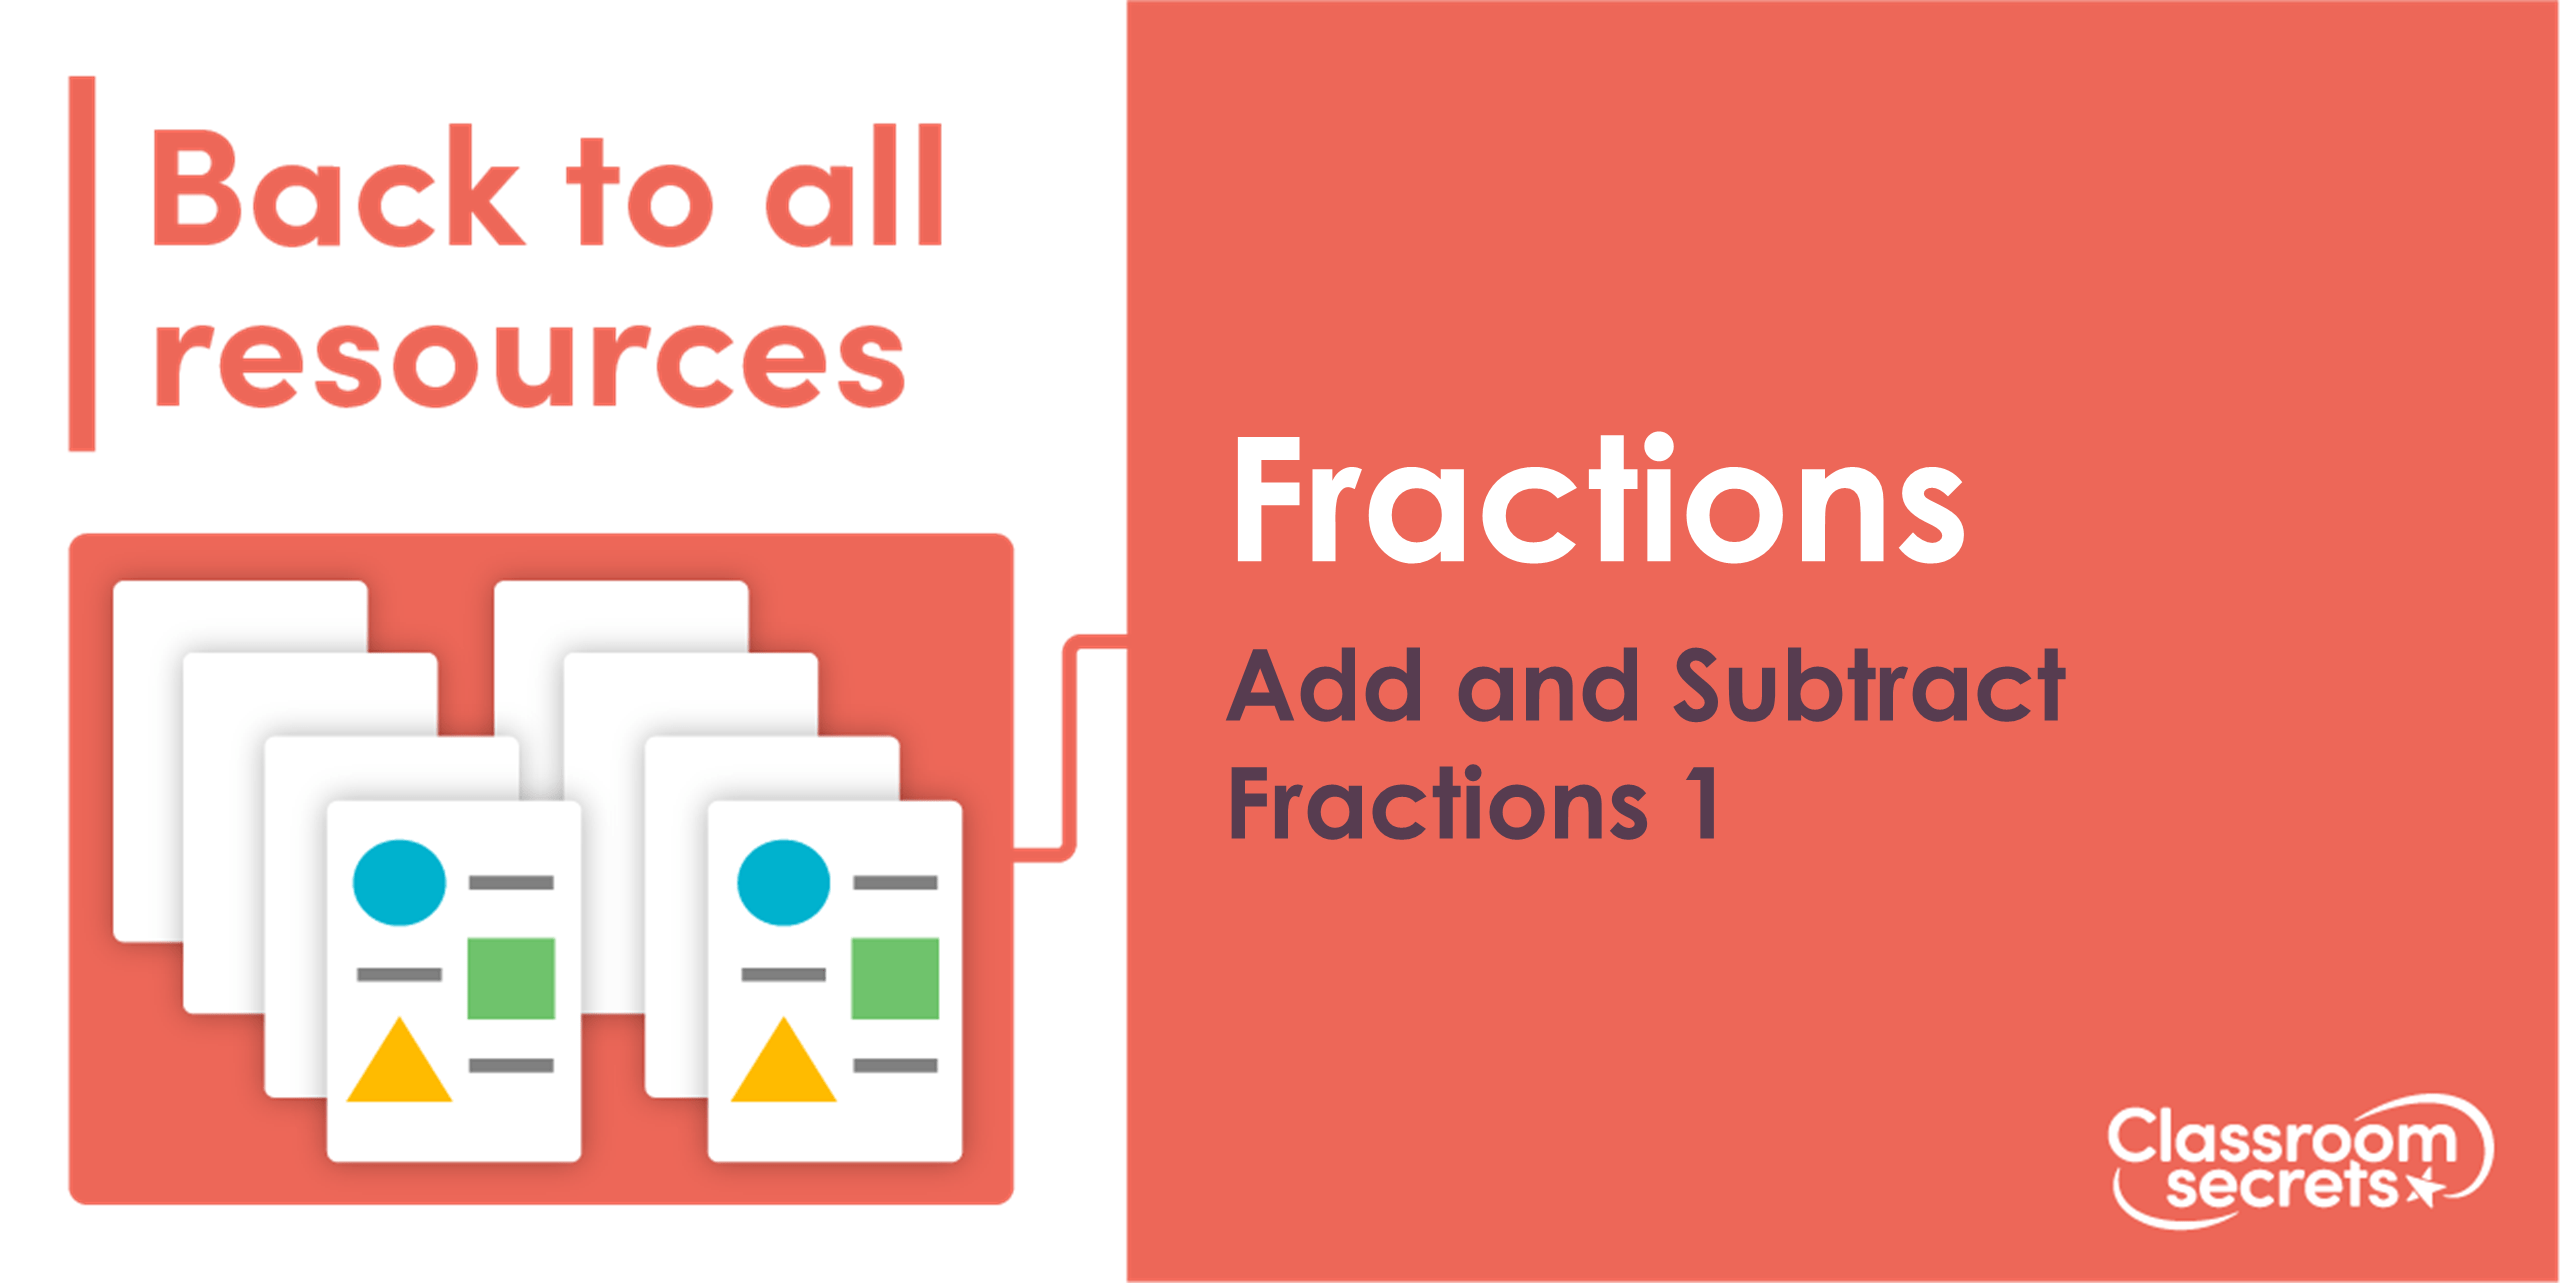 Year 6 Add And Subtract Fractions 1 Lesson